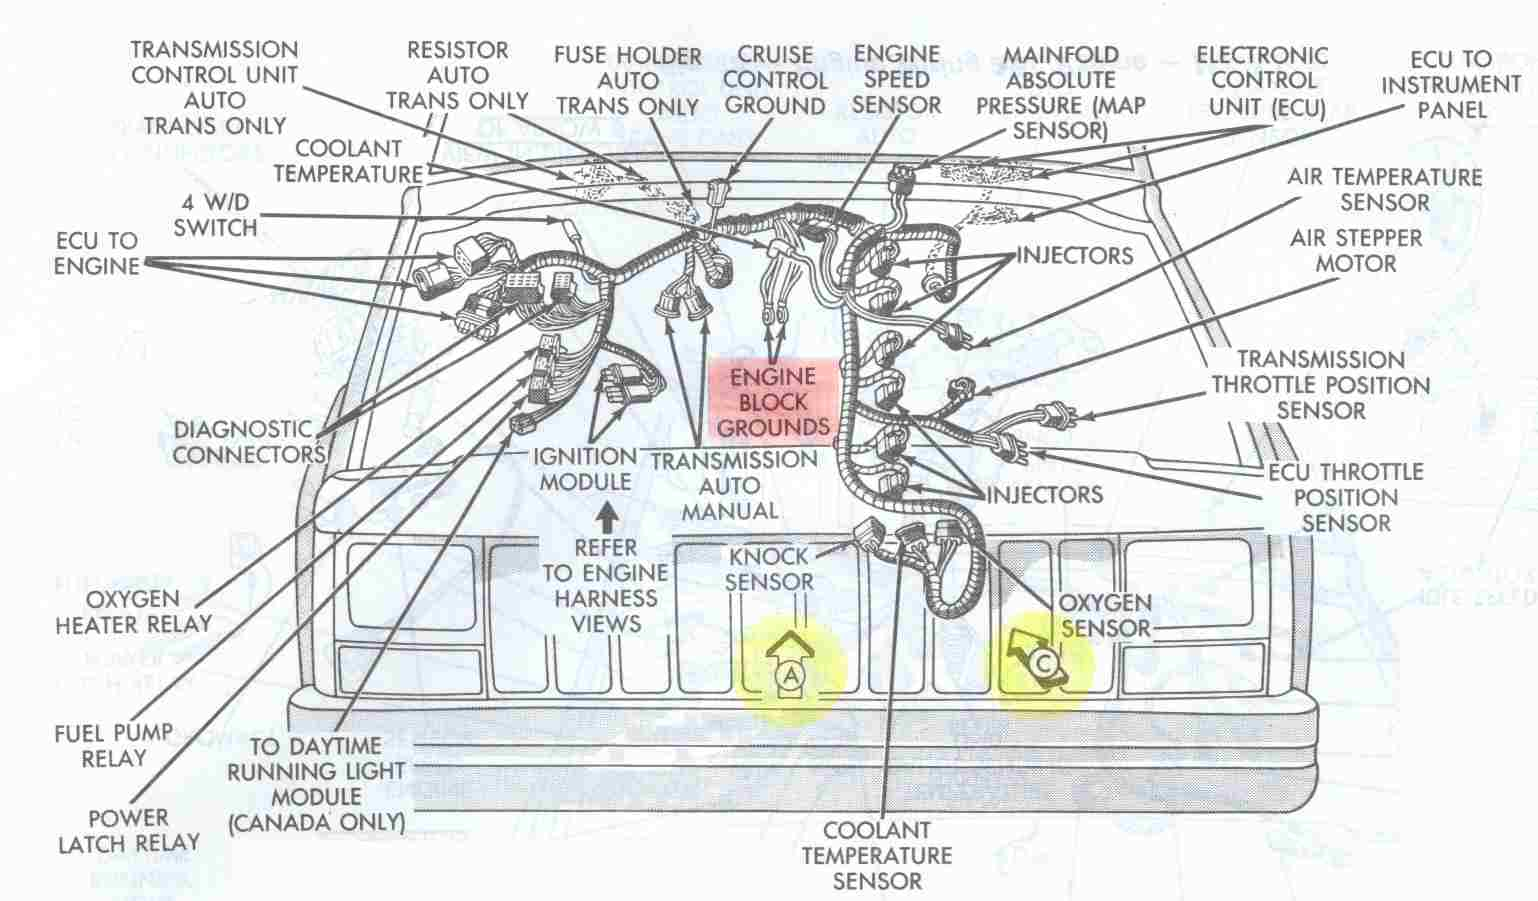 jeep grand cherokee ignition wiring diagram wiring diagram wiring diagram for wires under dash jeep cherokee forum